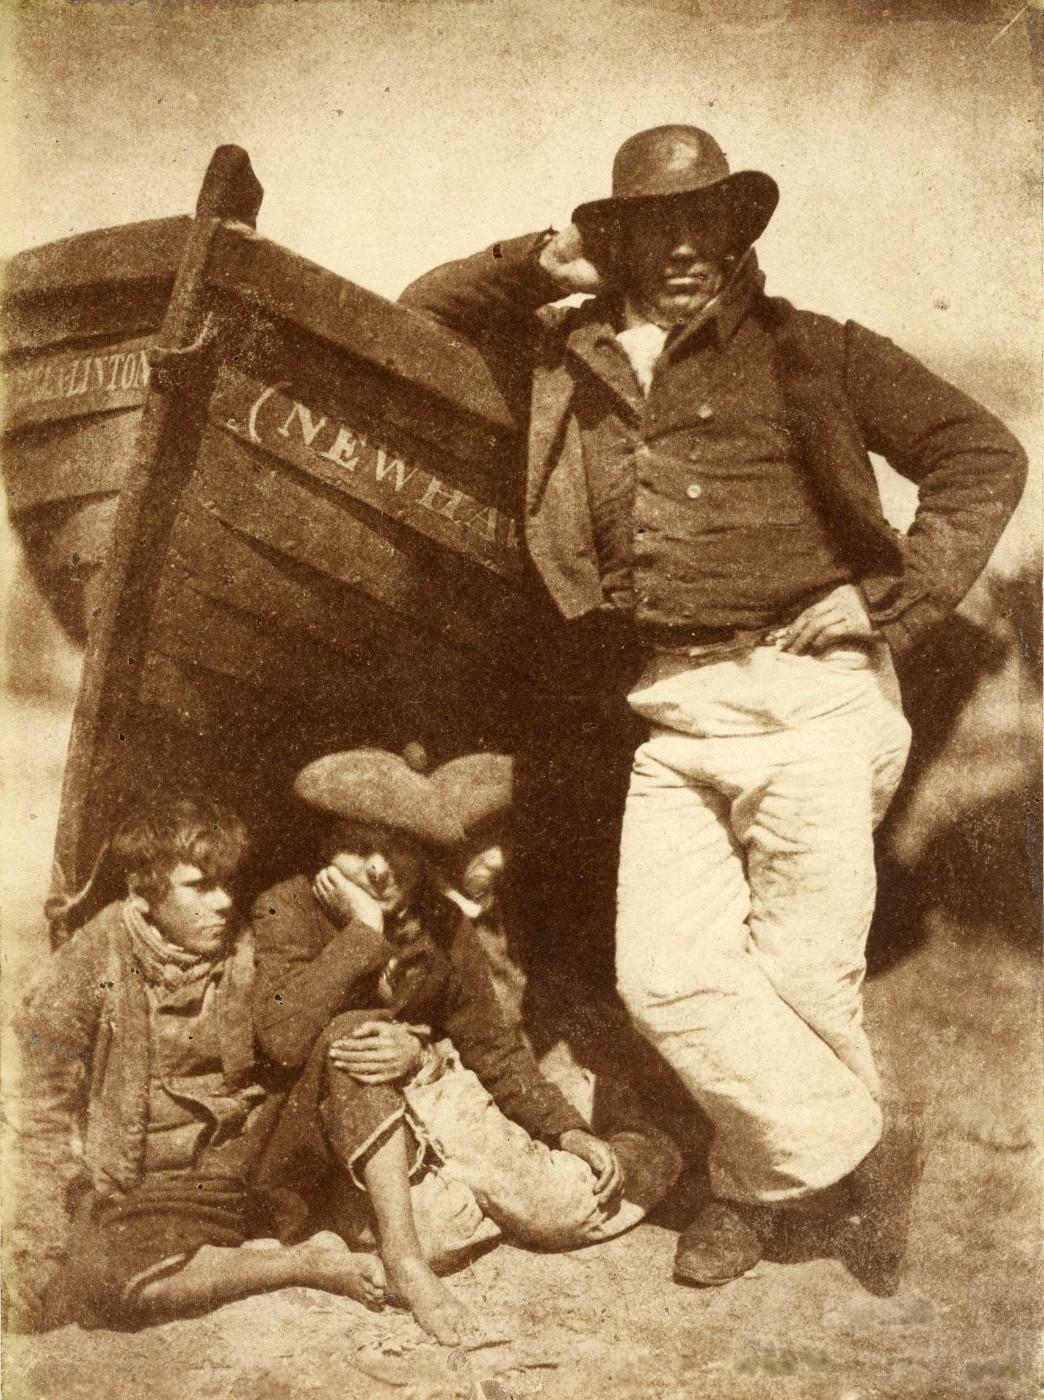 D.O. Hill and Robert Adamson, Sandy Linton, his boat and his bairns, New Haven, 1845